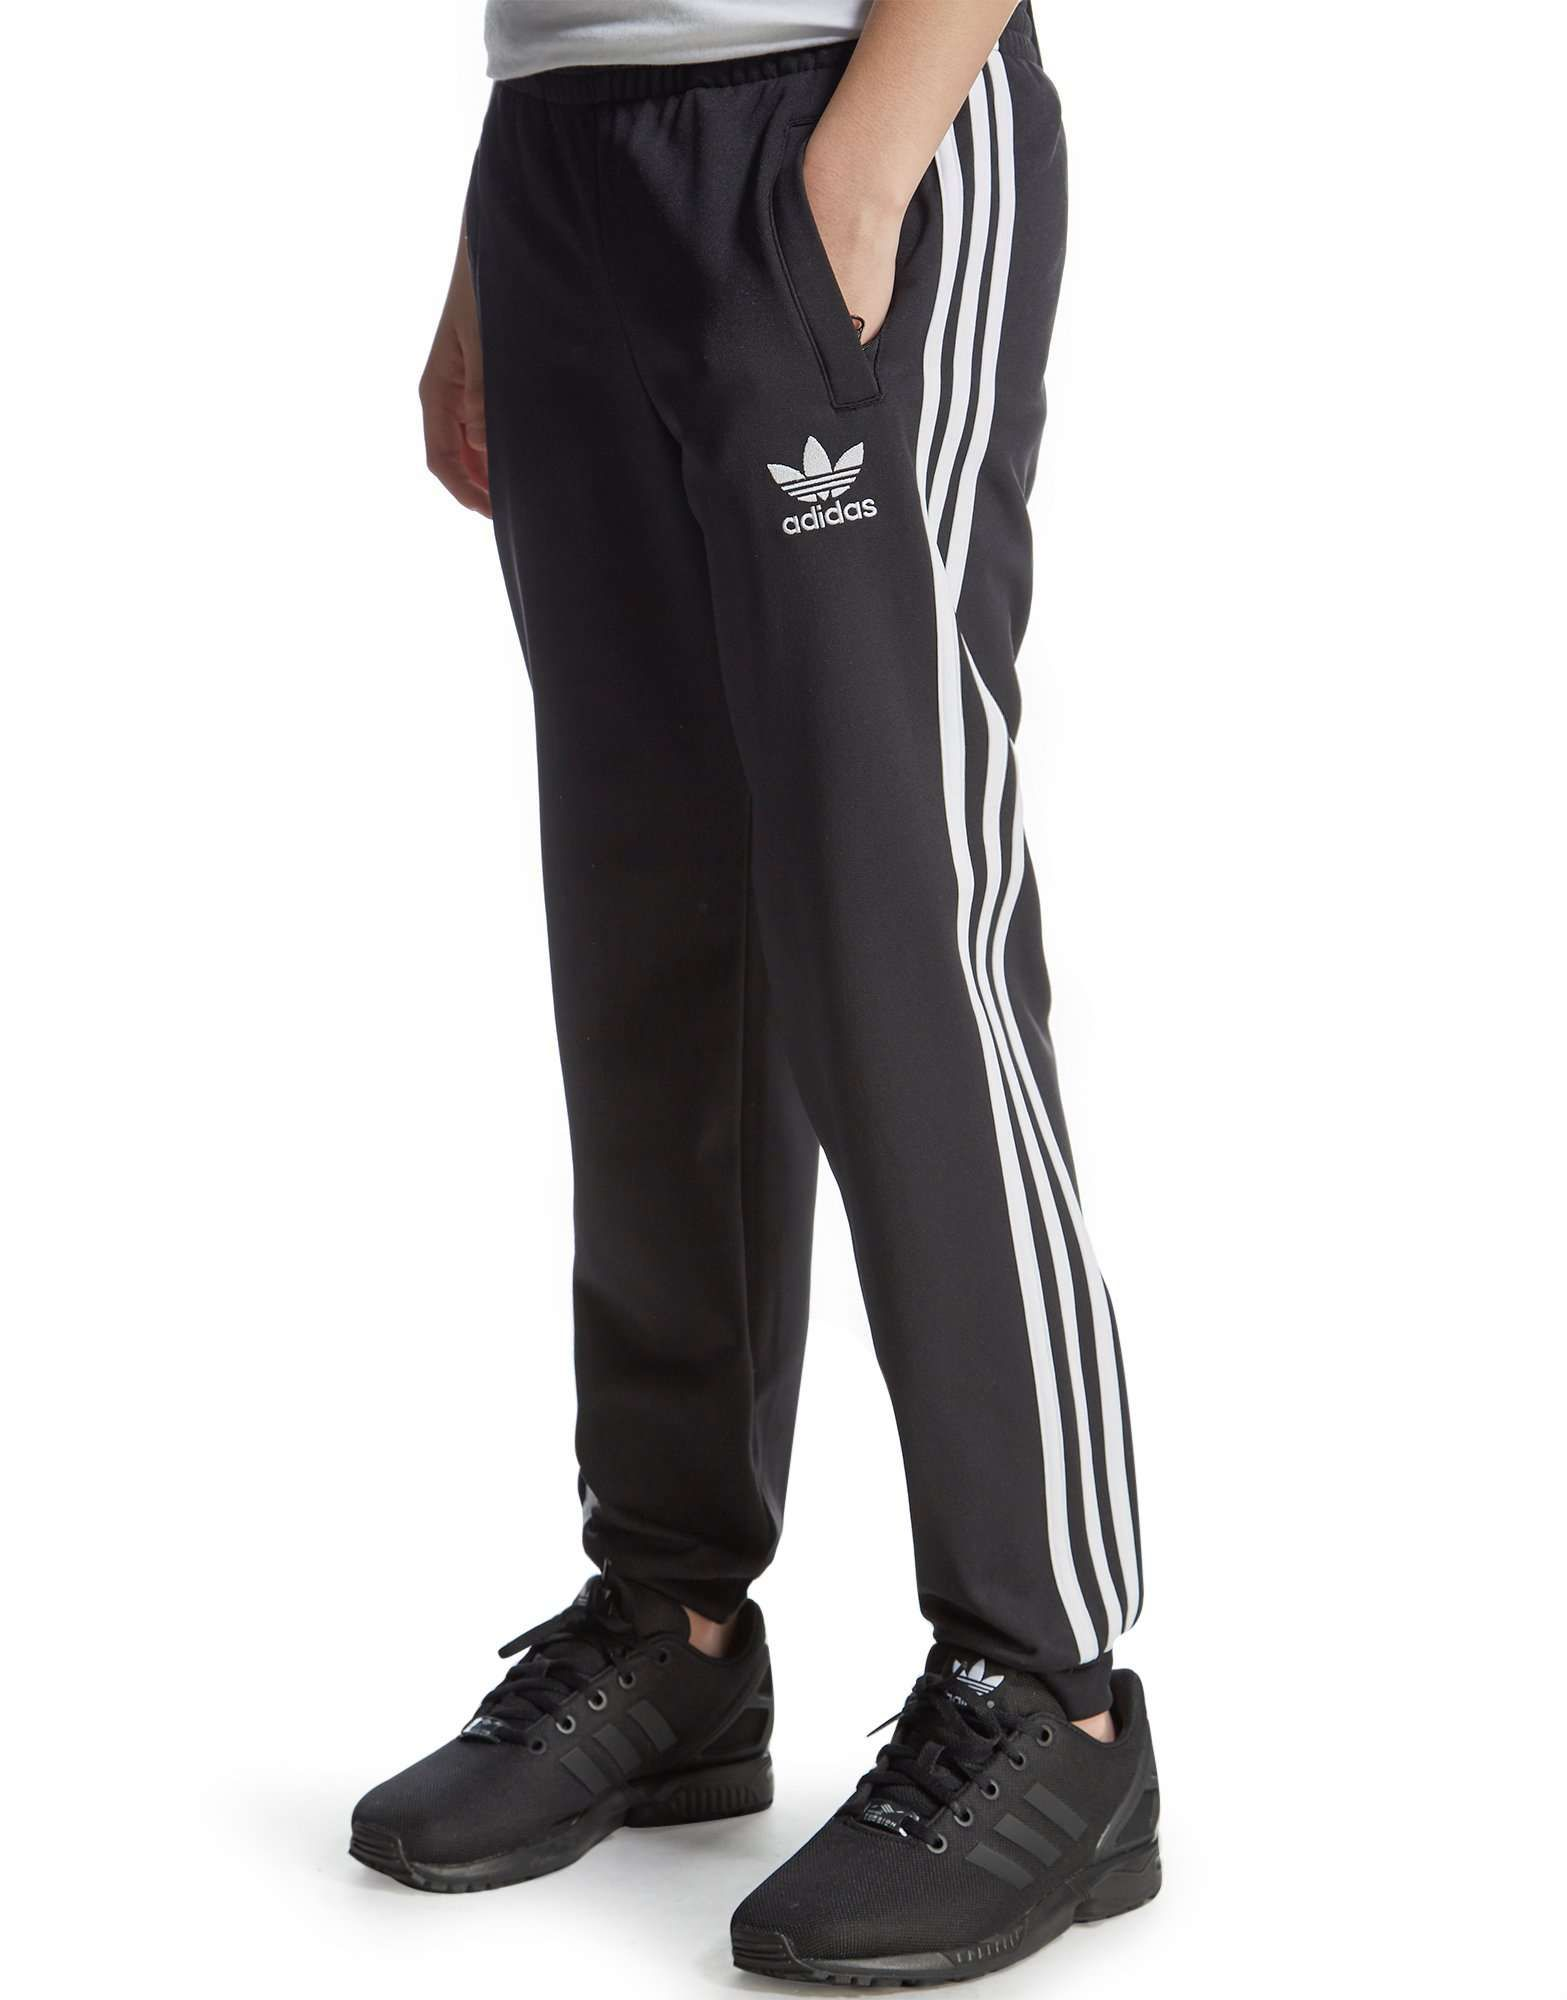 quality design c6c47 3ff06 adidas Originals Poly Track Pants Junior - Shop online for ...